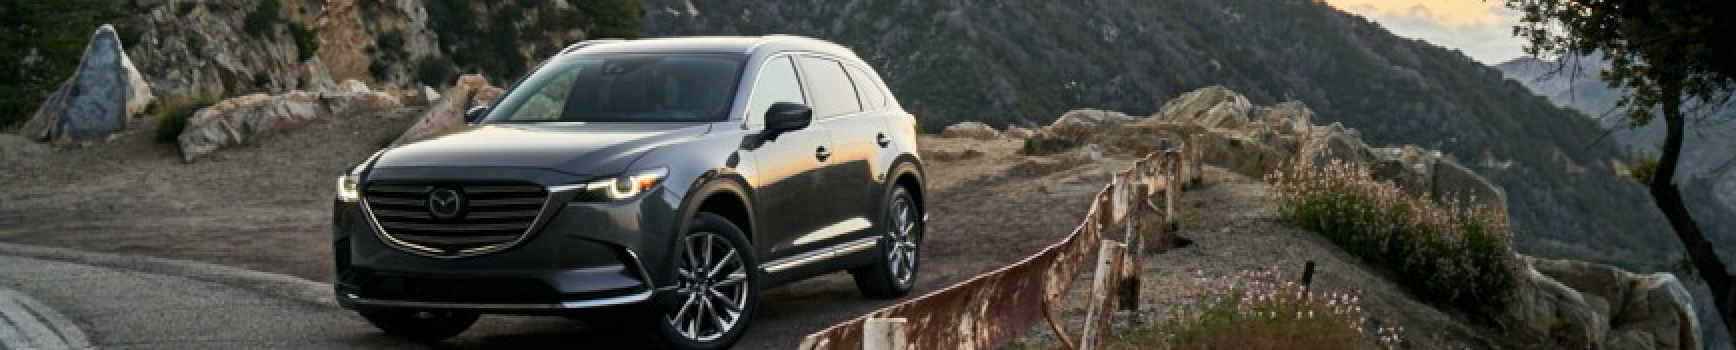 Mazda CX-9 in {City}